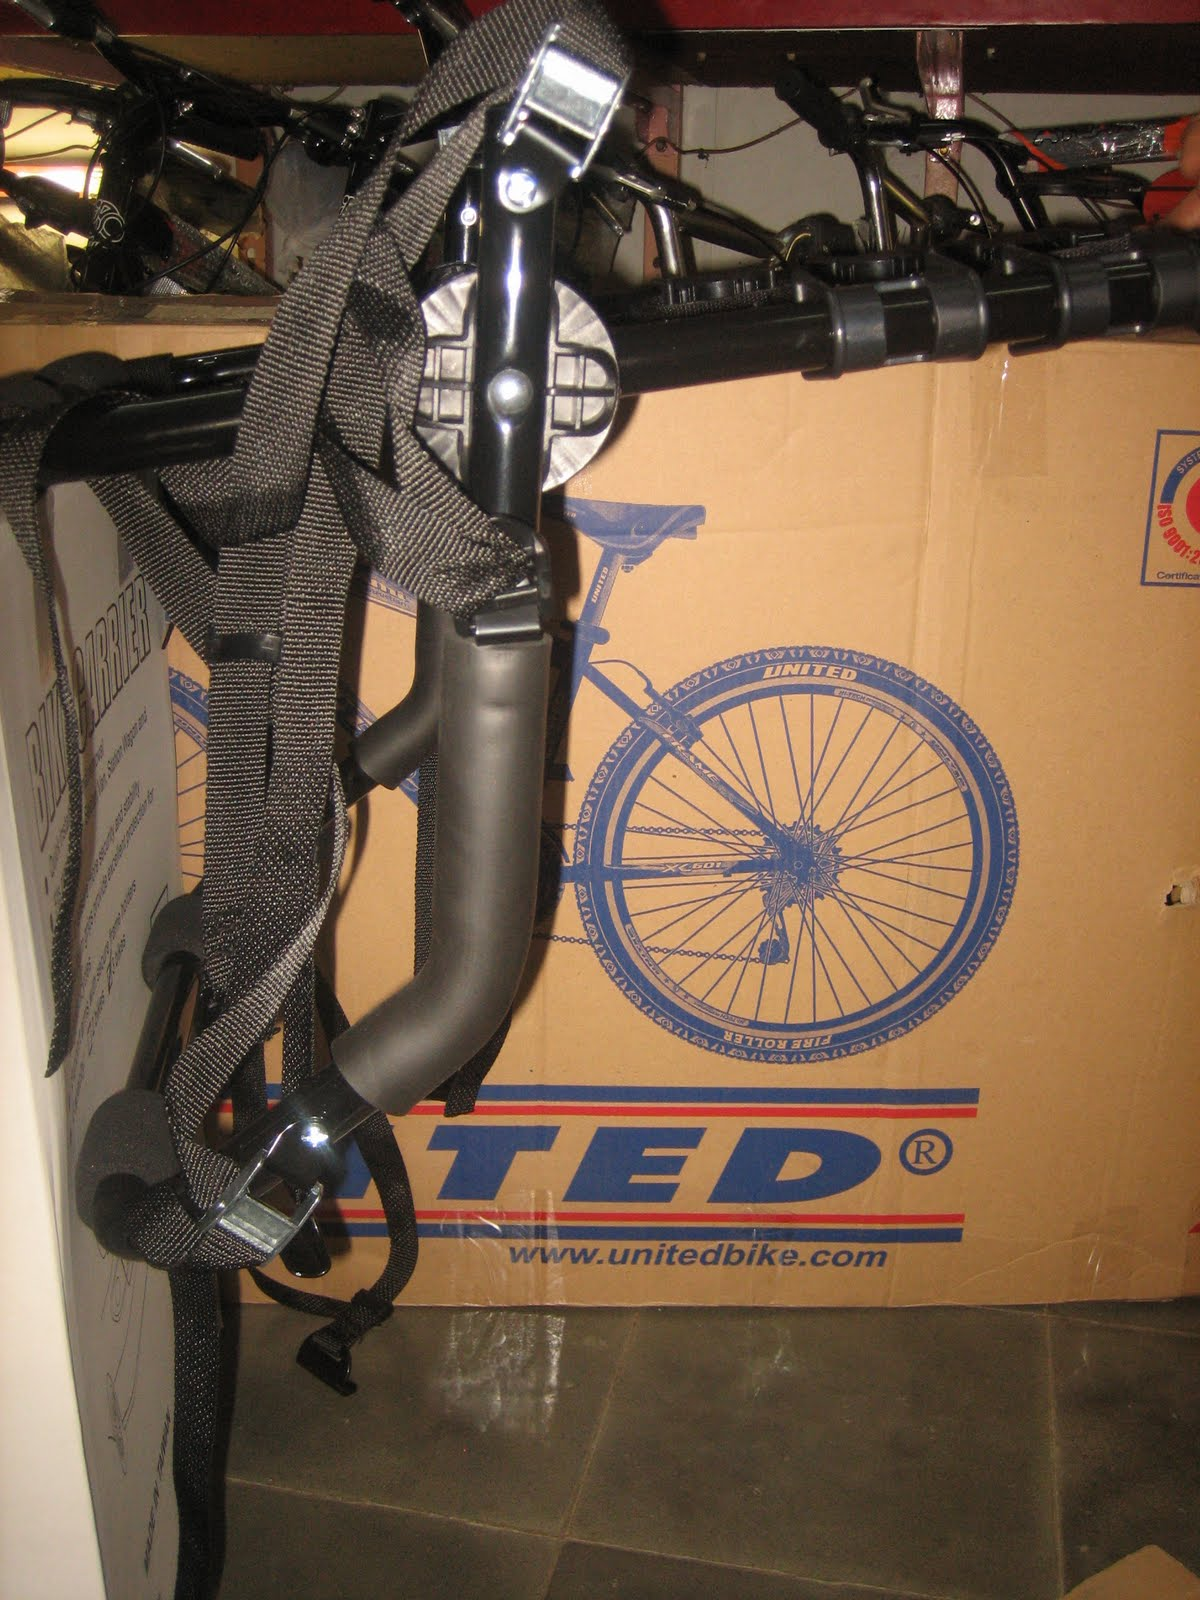 Tokomagenta A Showcase Of Products Bike Carrier With